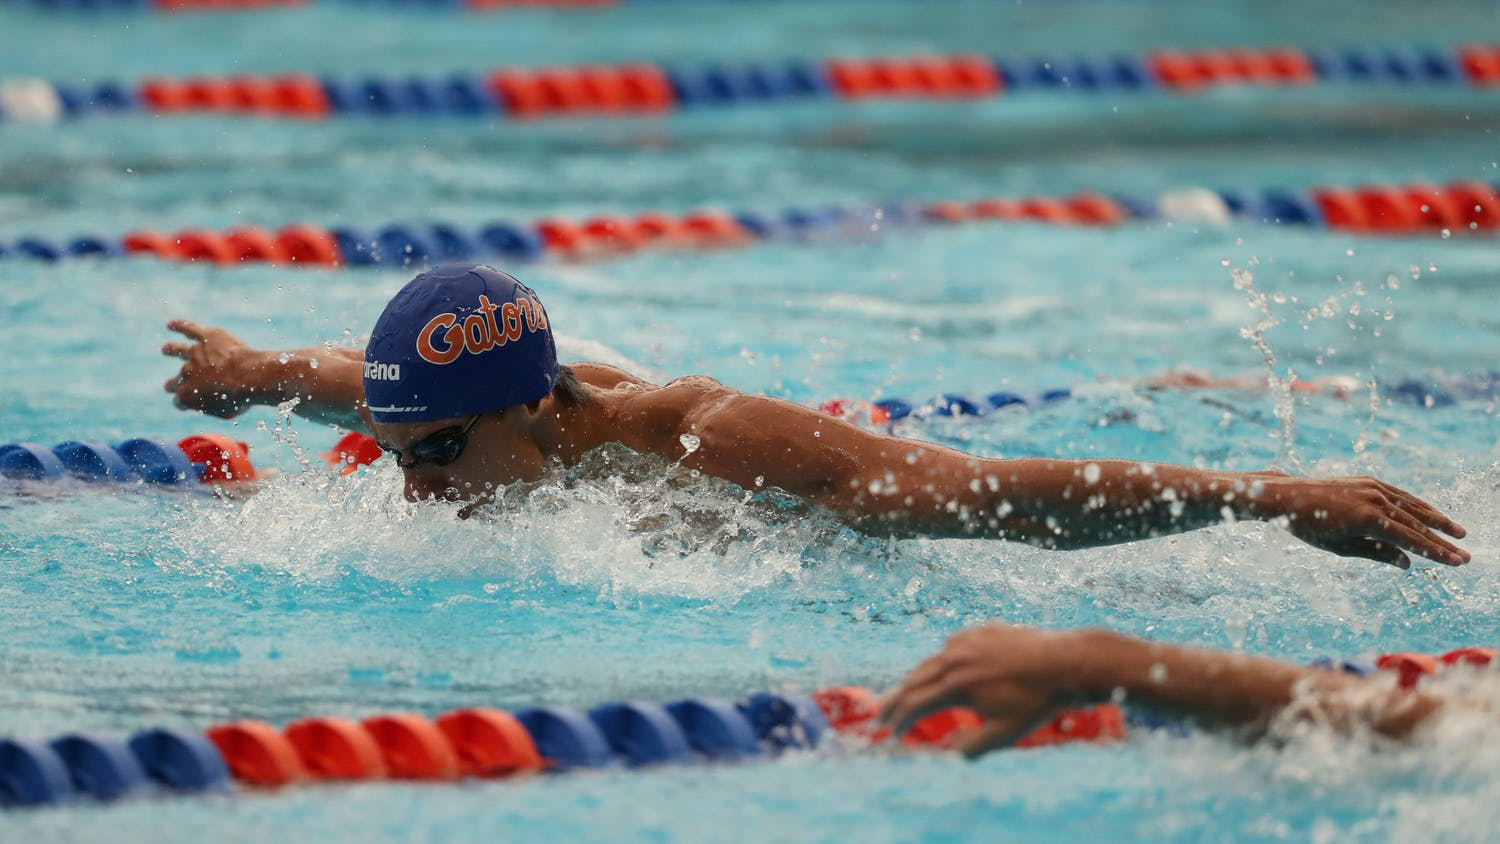 A Florida swimmer competes at the Stephen C. O'Connell Center Natatorium in Gainesville, FL / UAA Communications photo by Hannah White